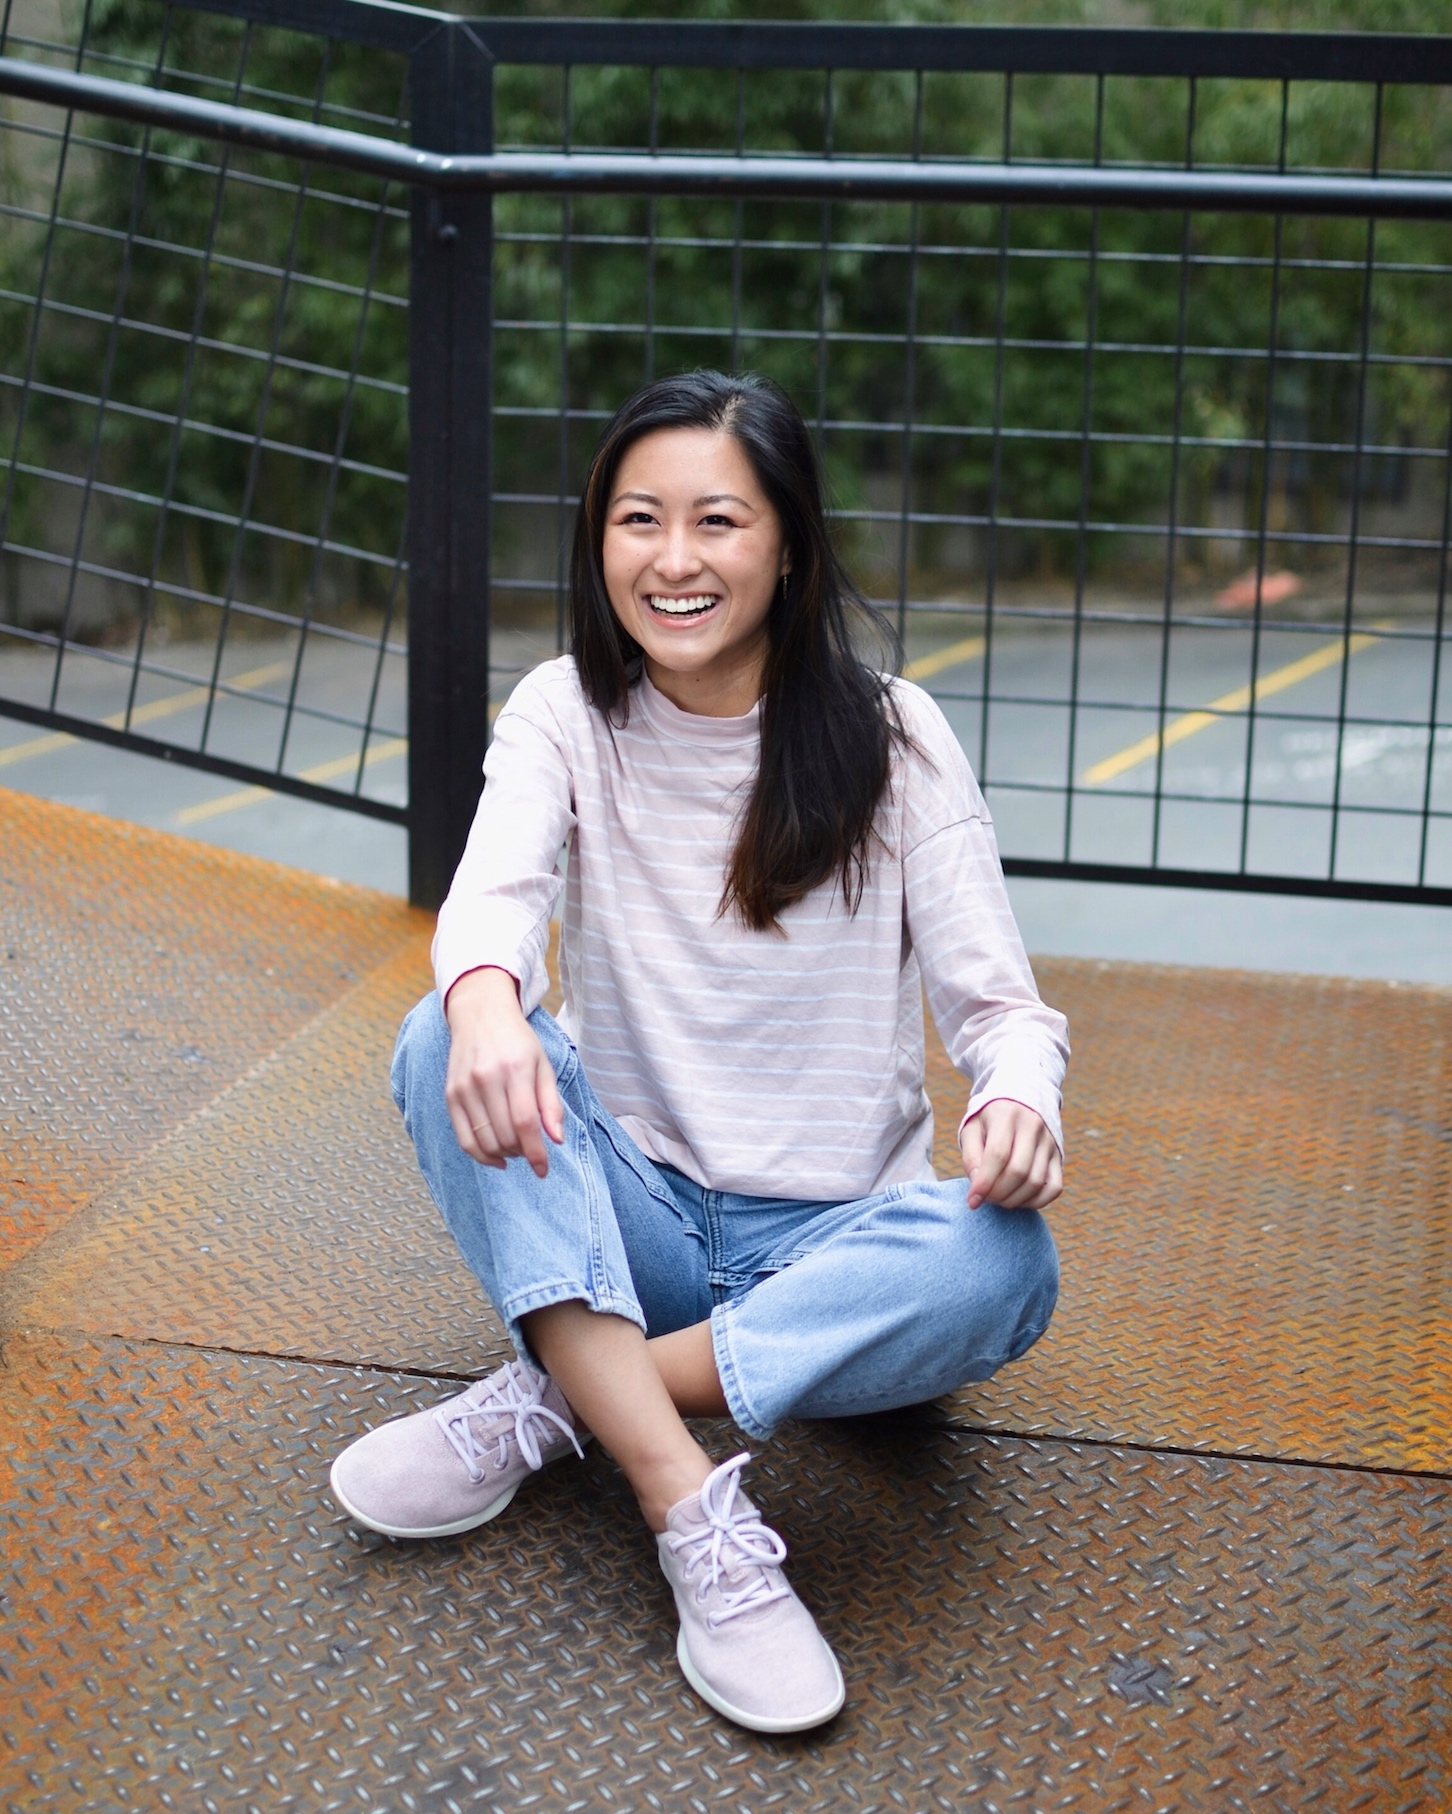 Everlane pink top and casual denim // A Week Of Empowered Outfits With Cat Chiang From Restitchstance on The Good Trade